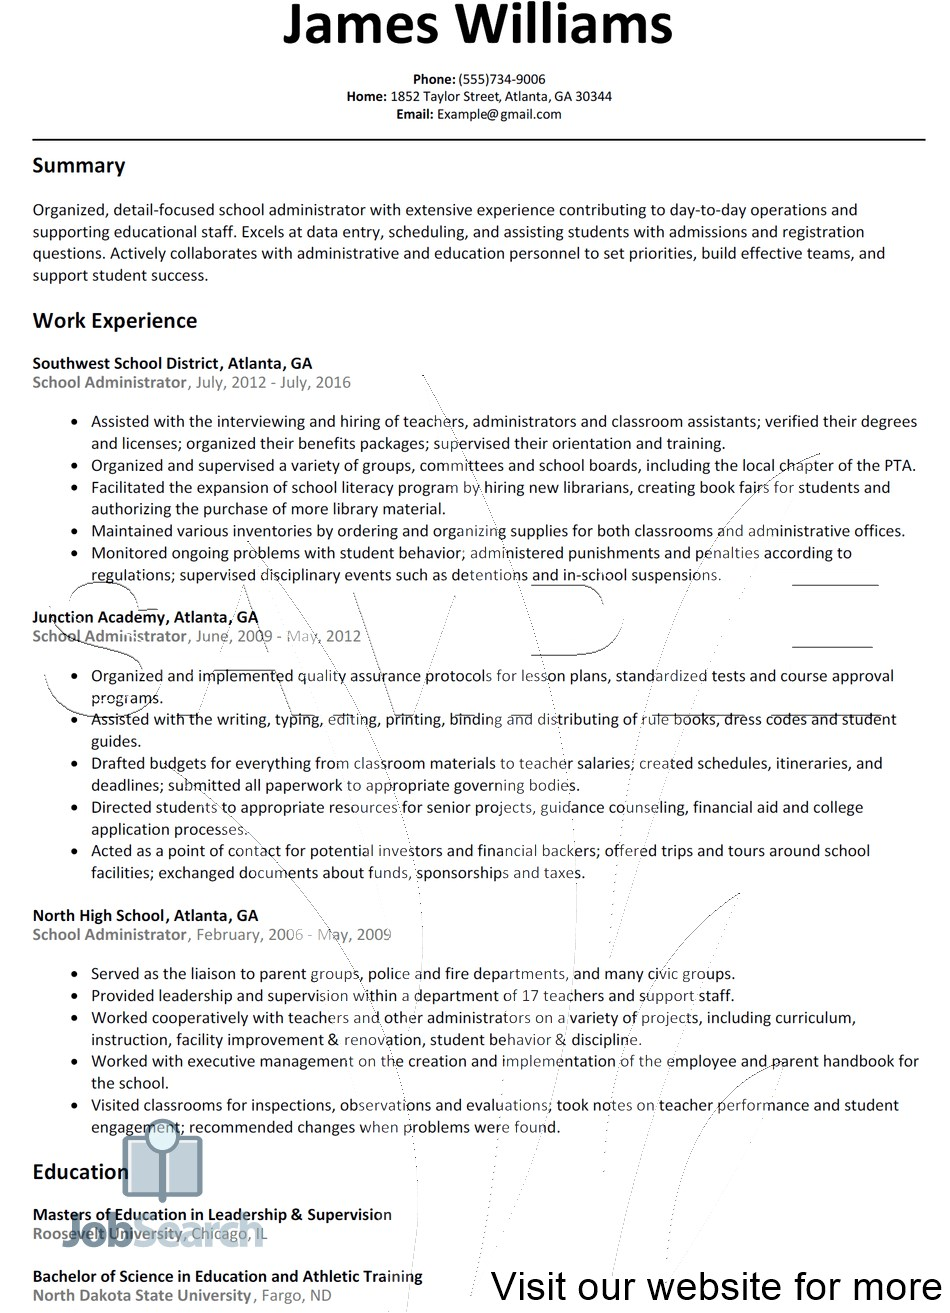 Office Administrator Resume Sample 2020 Office Administrator Resume Sample Office In 2020 Teacher Resume Template Free Teacher Resume Template Resume Template Free